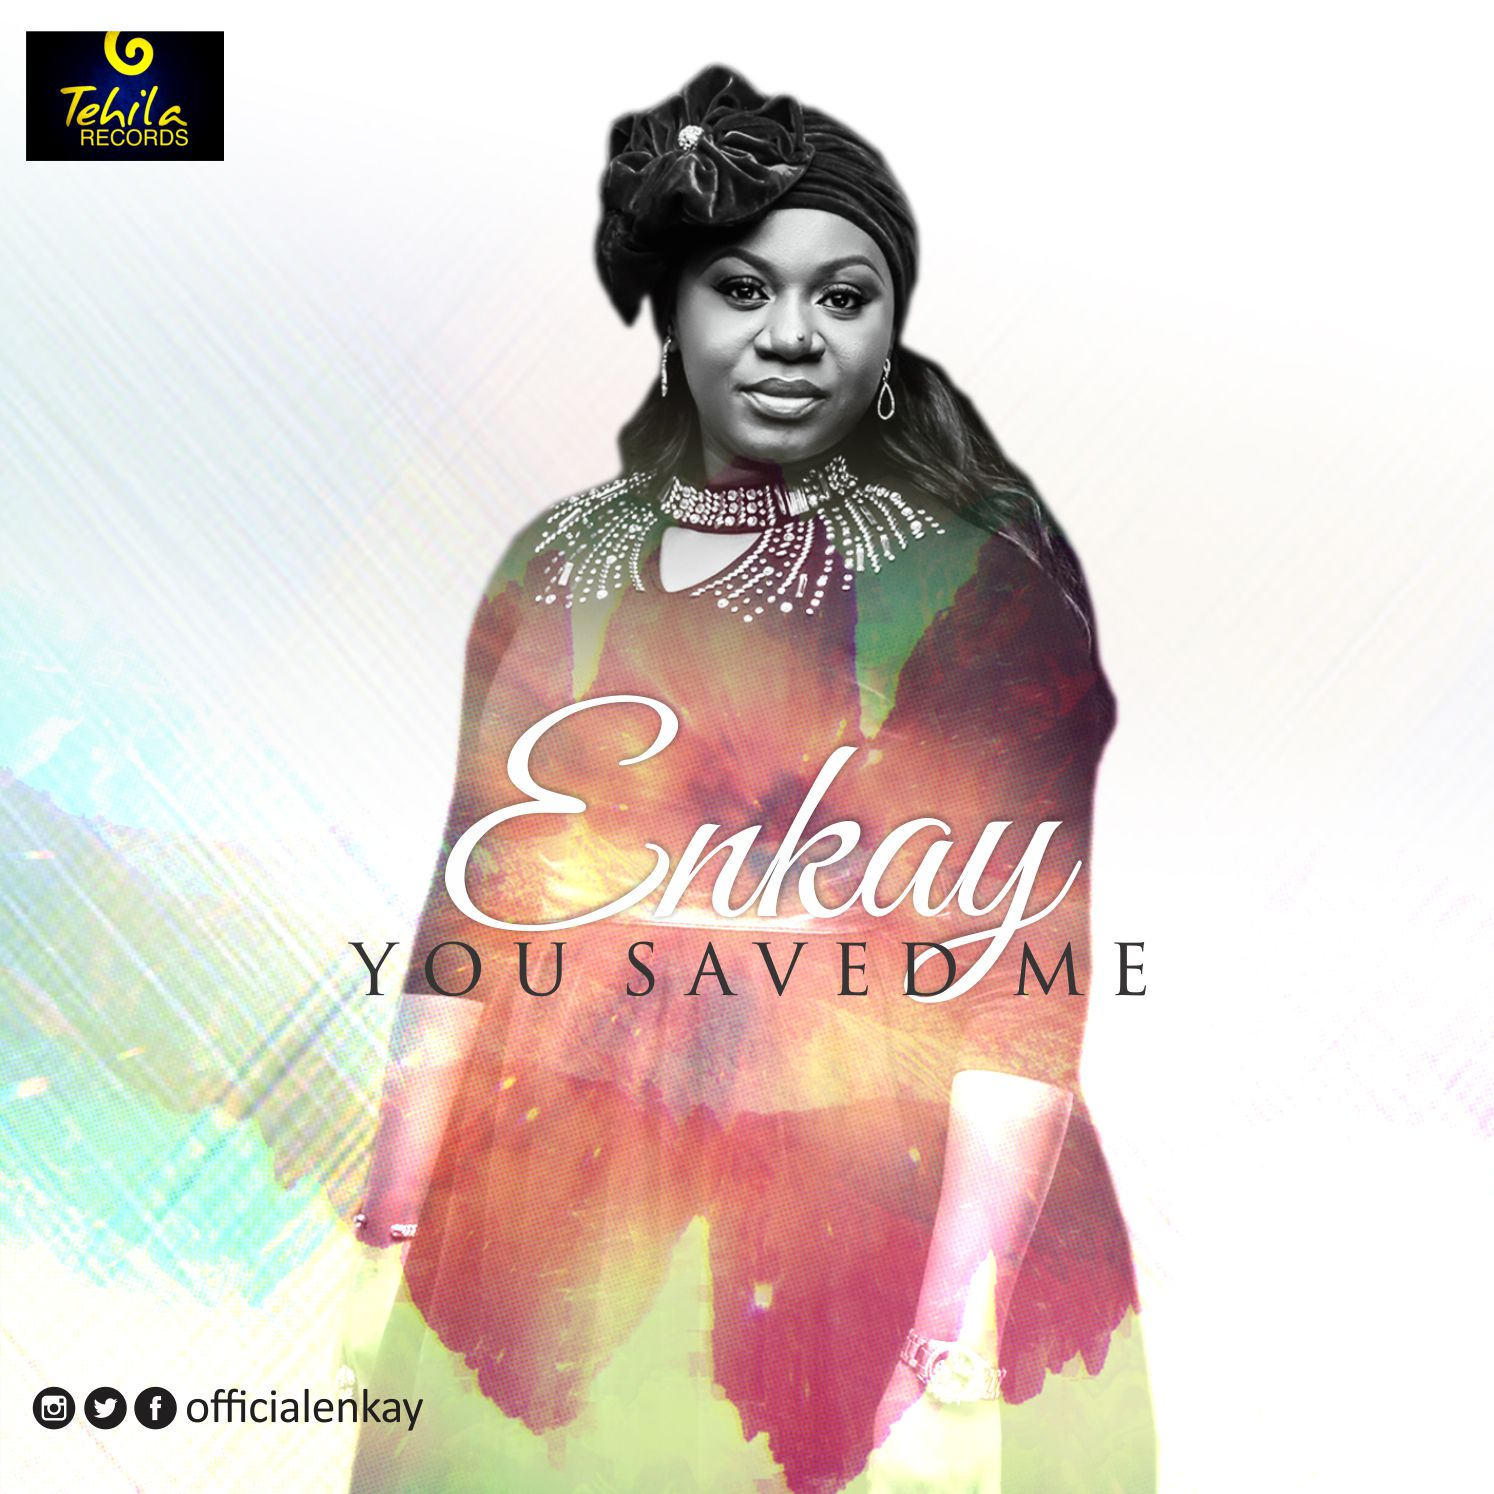 The song is an inspiring piece which clearly embodies Enkay's appreciation of God's delivering power.... ( Listen )